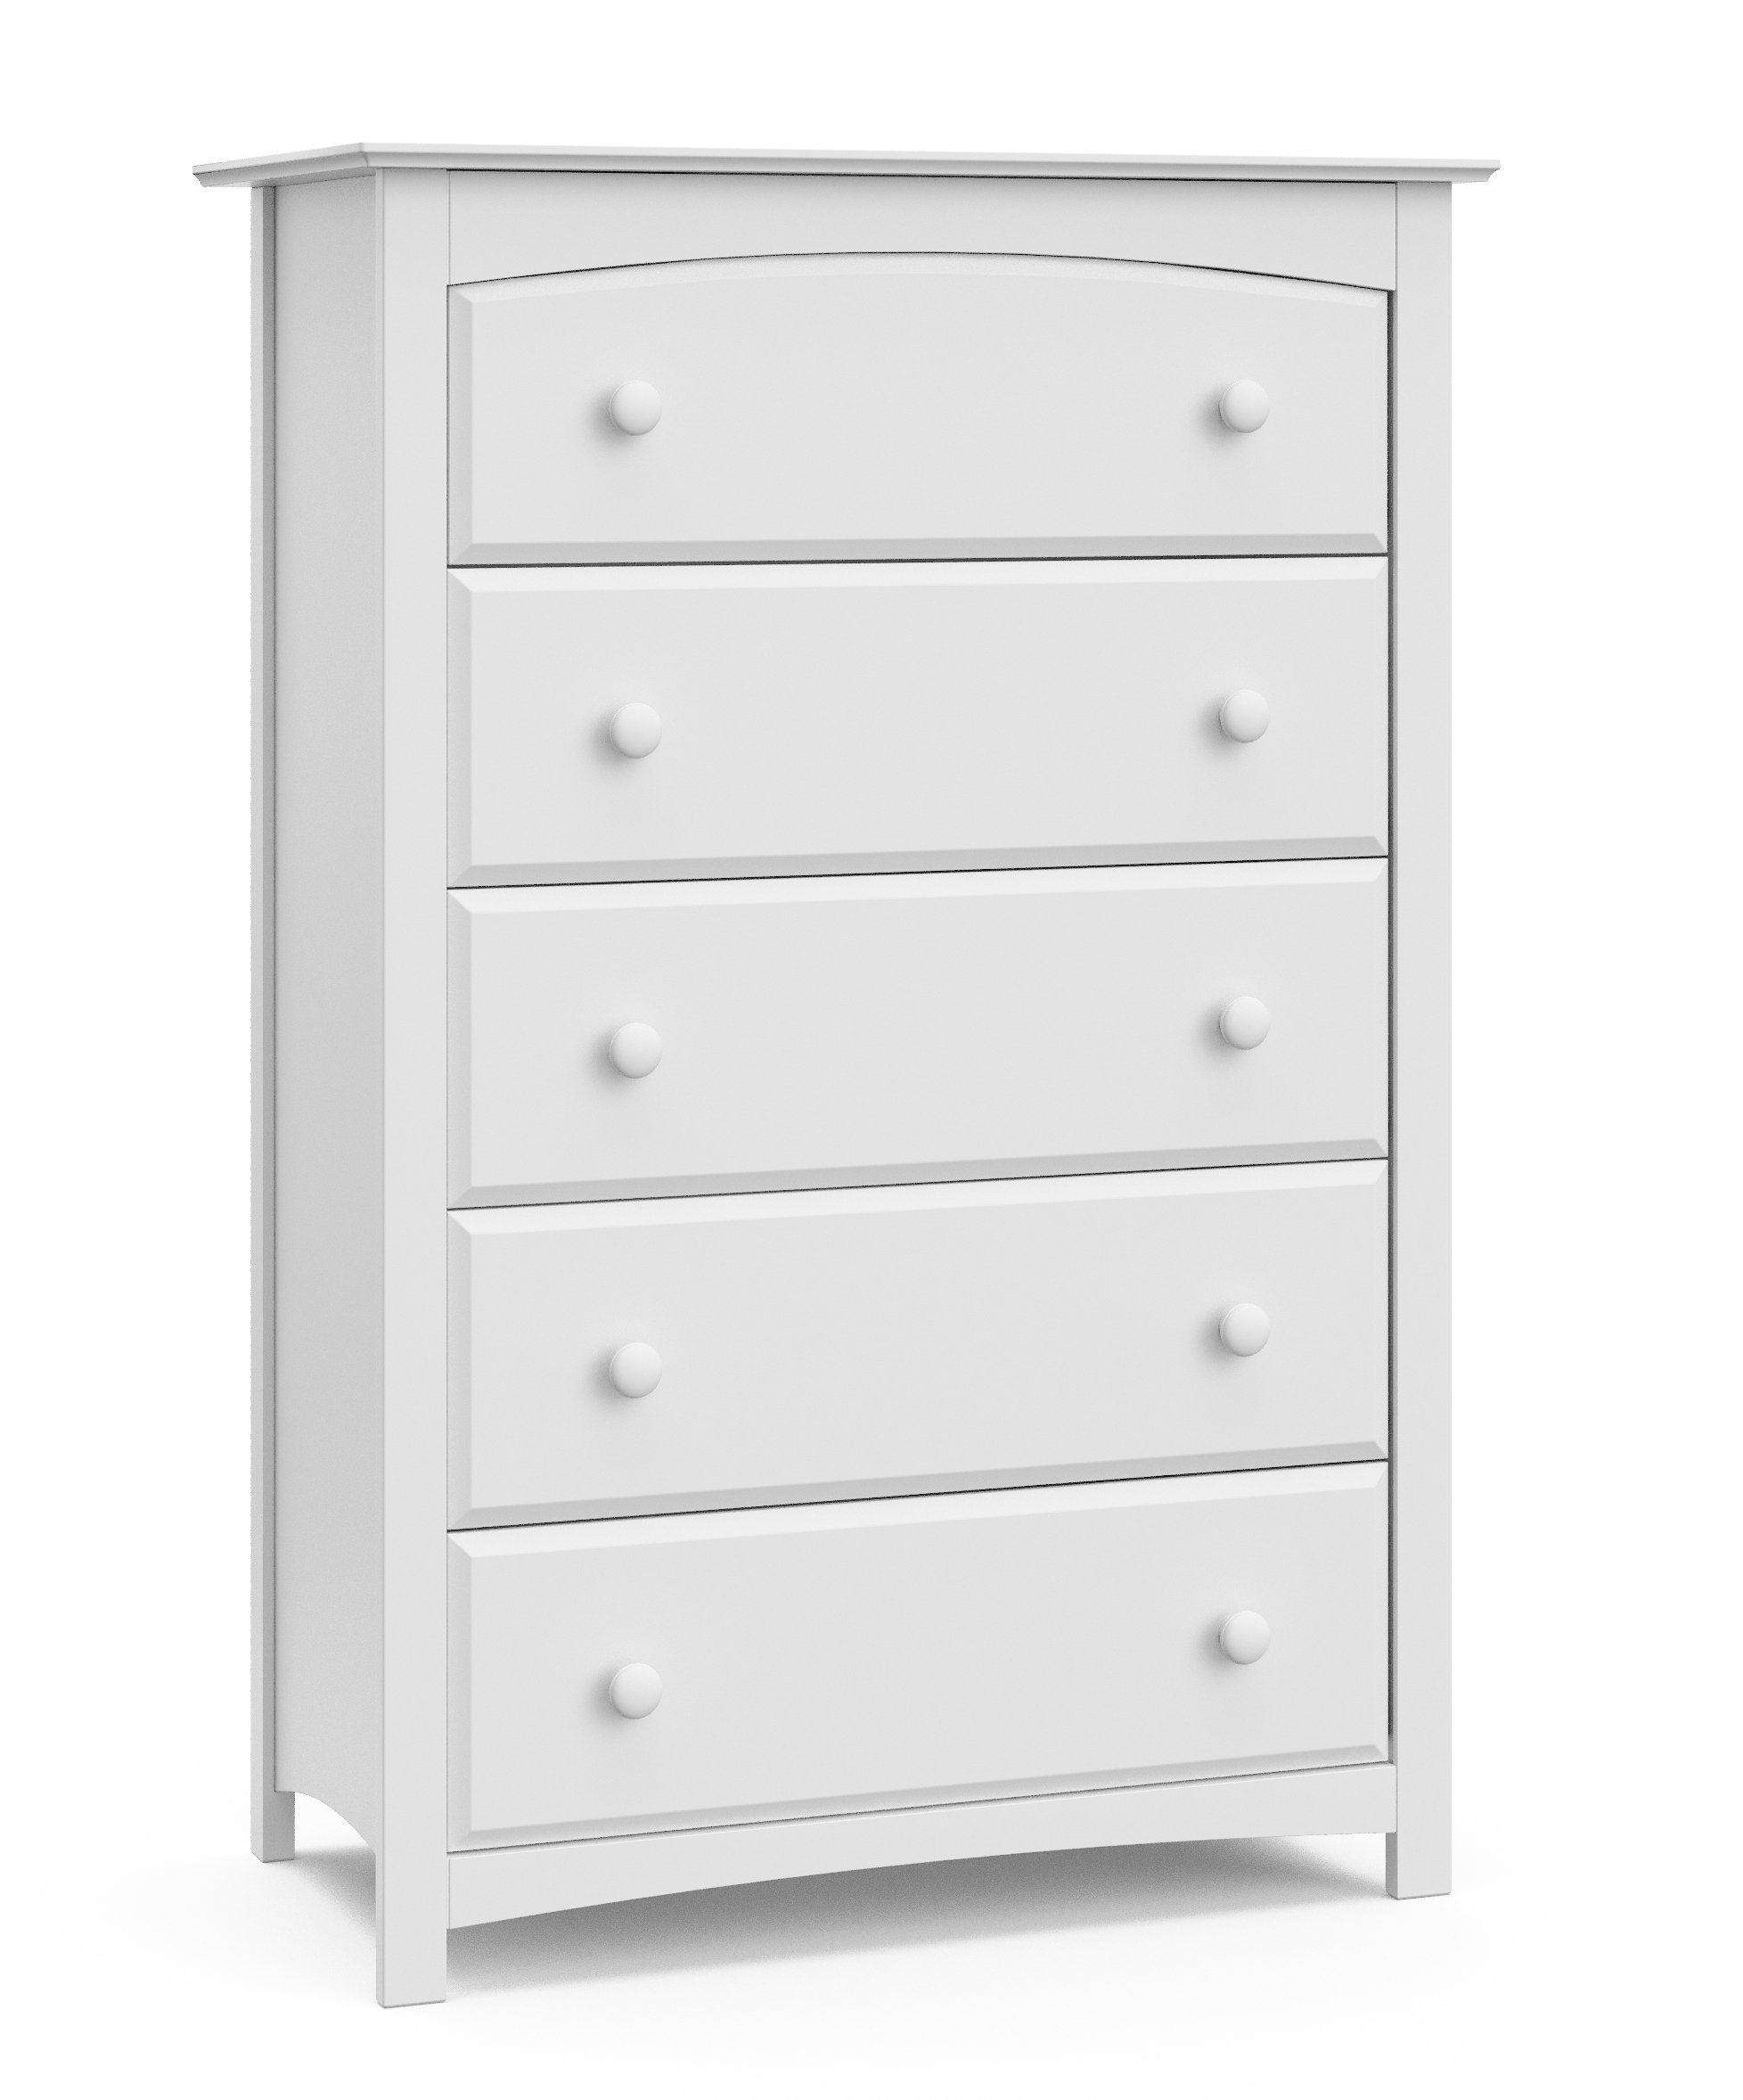 Kids Bedroom Dresser with 5 Drawers Wood and Composite Construction Storkcraft Kenton 5 Drawer Universal Dresser Ideal for Nursery Toddlers Room Kids Room Pebble Gray